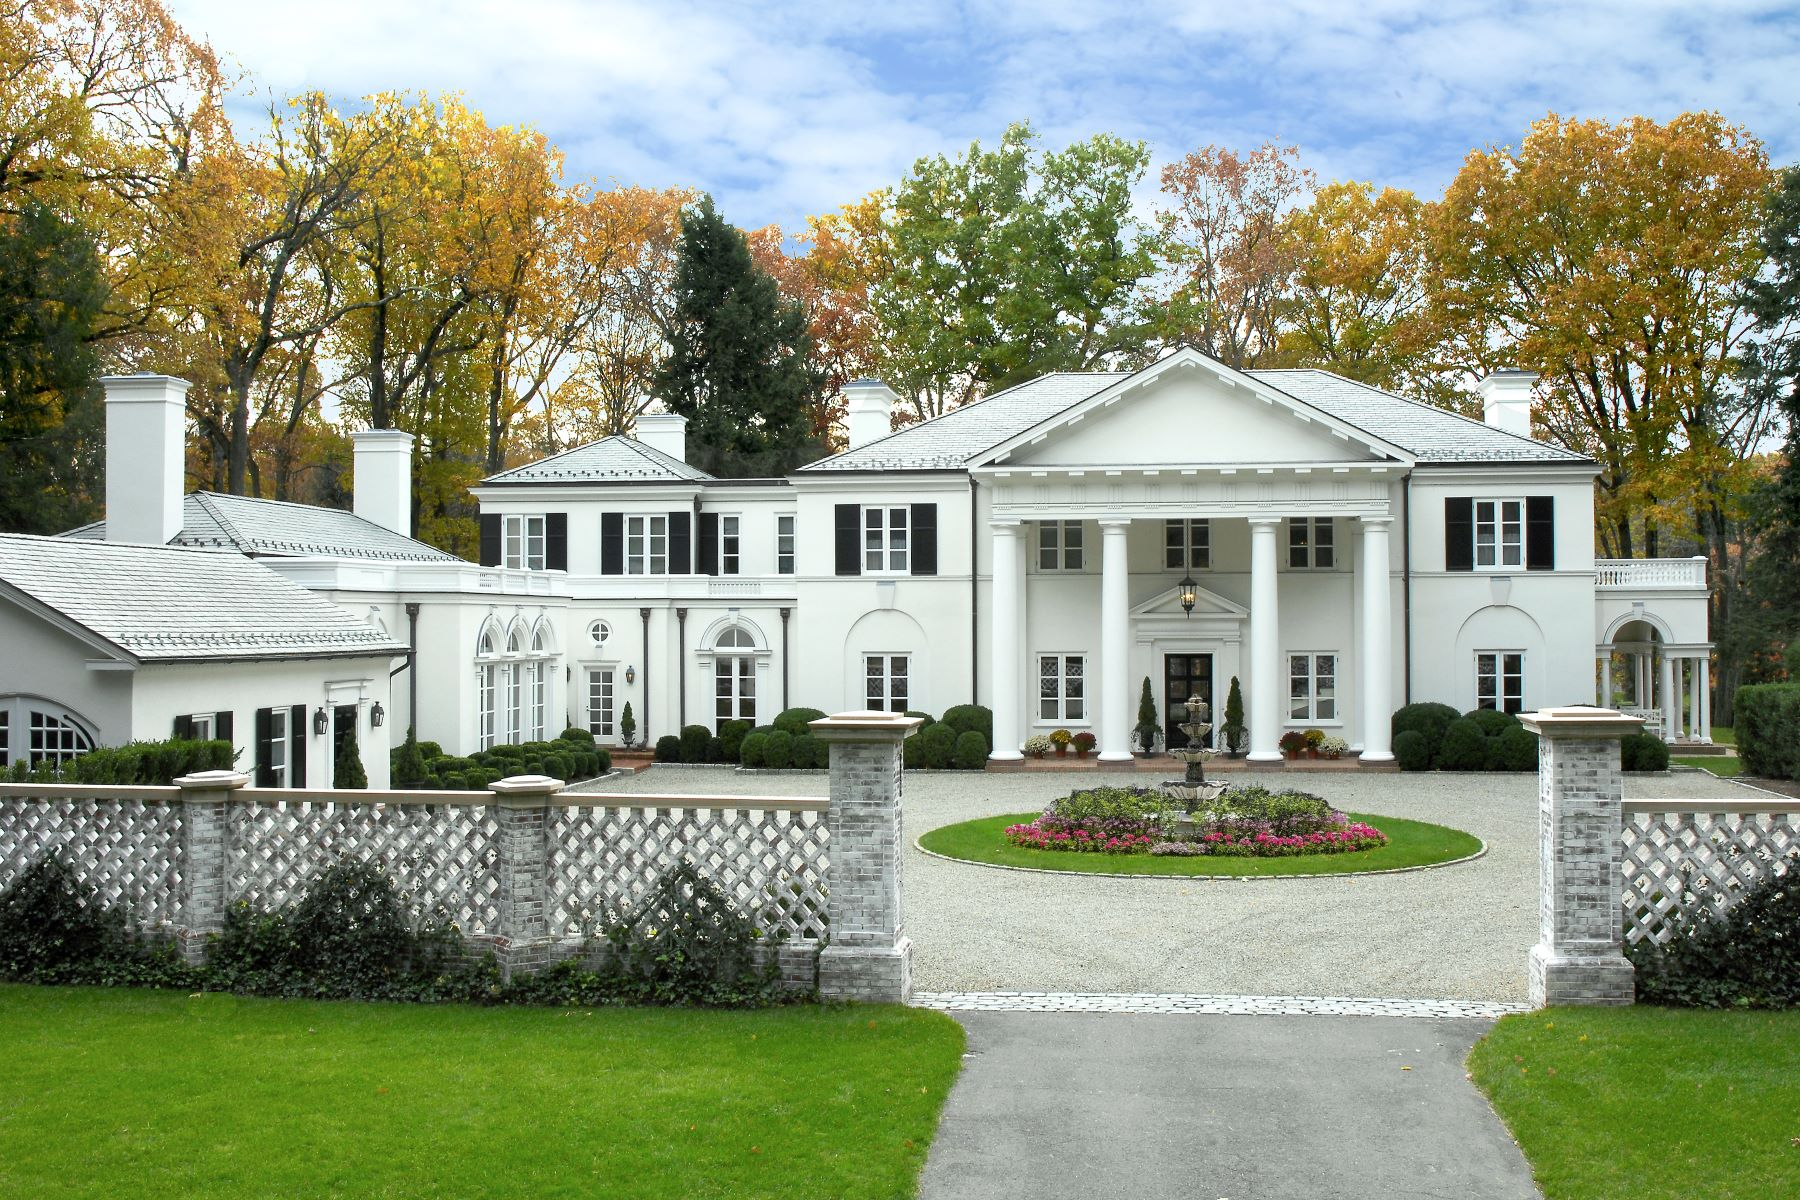 Maison unifamiliale pour l Vente à 99 Huckleberry Hill Road 99 Huckleberry Hill Road New Canaan, Connecticut 06840 États-Unis